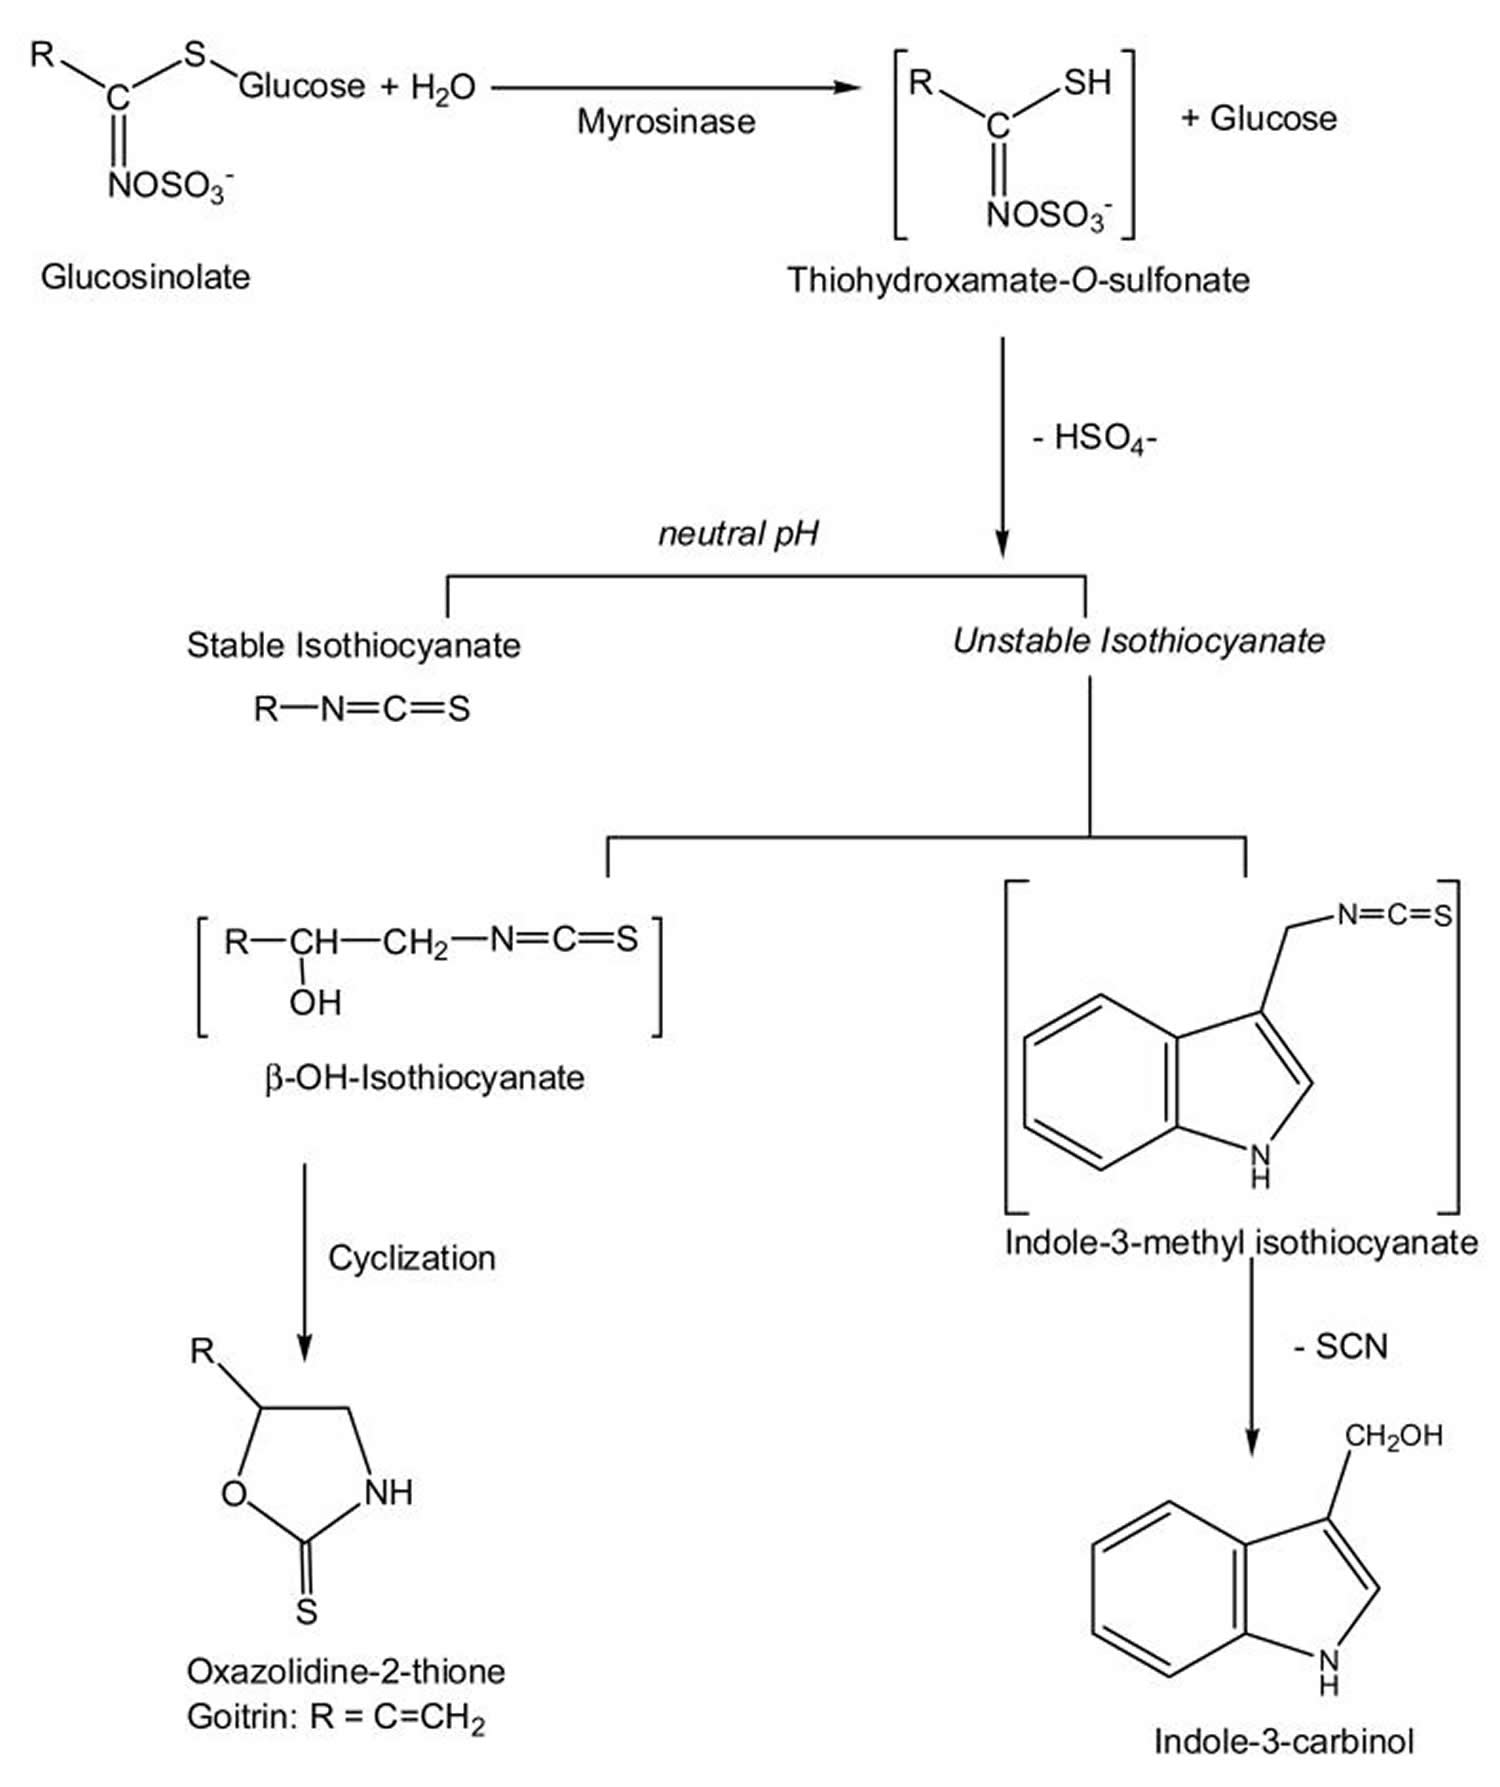 Breakdown of glucosinolates